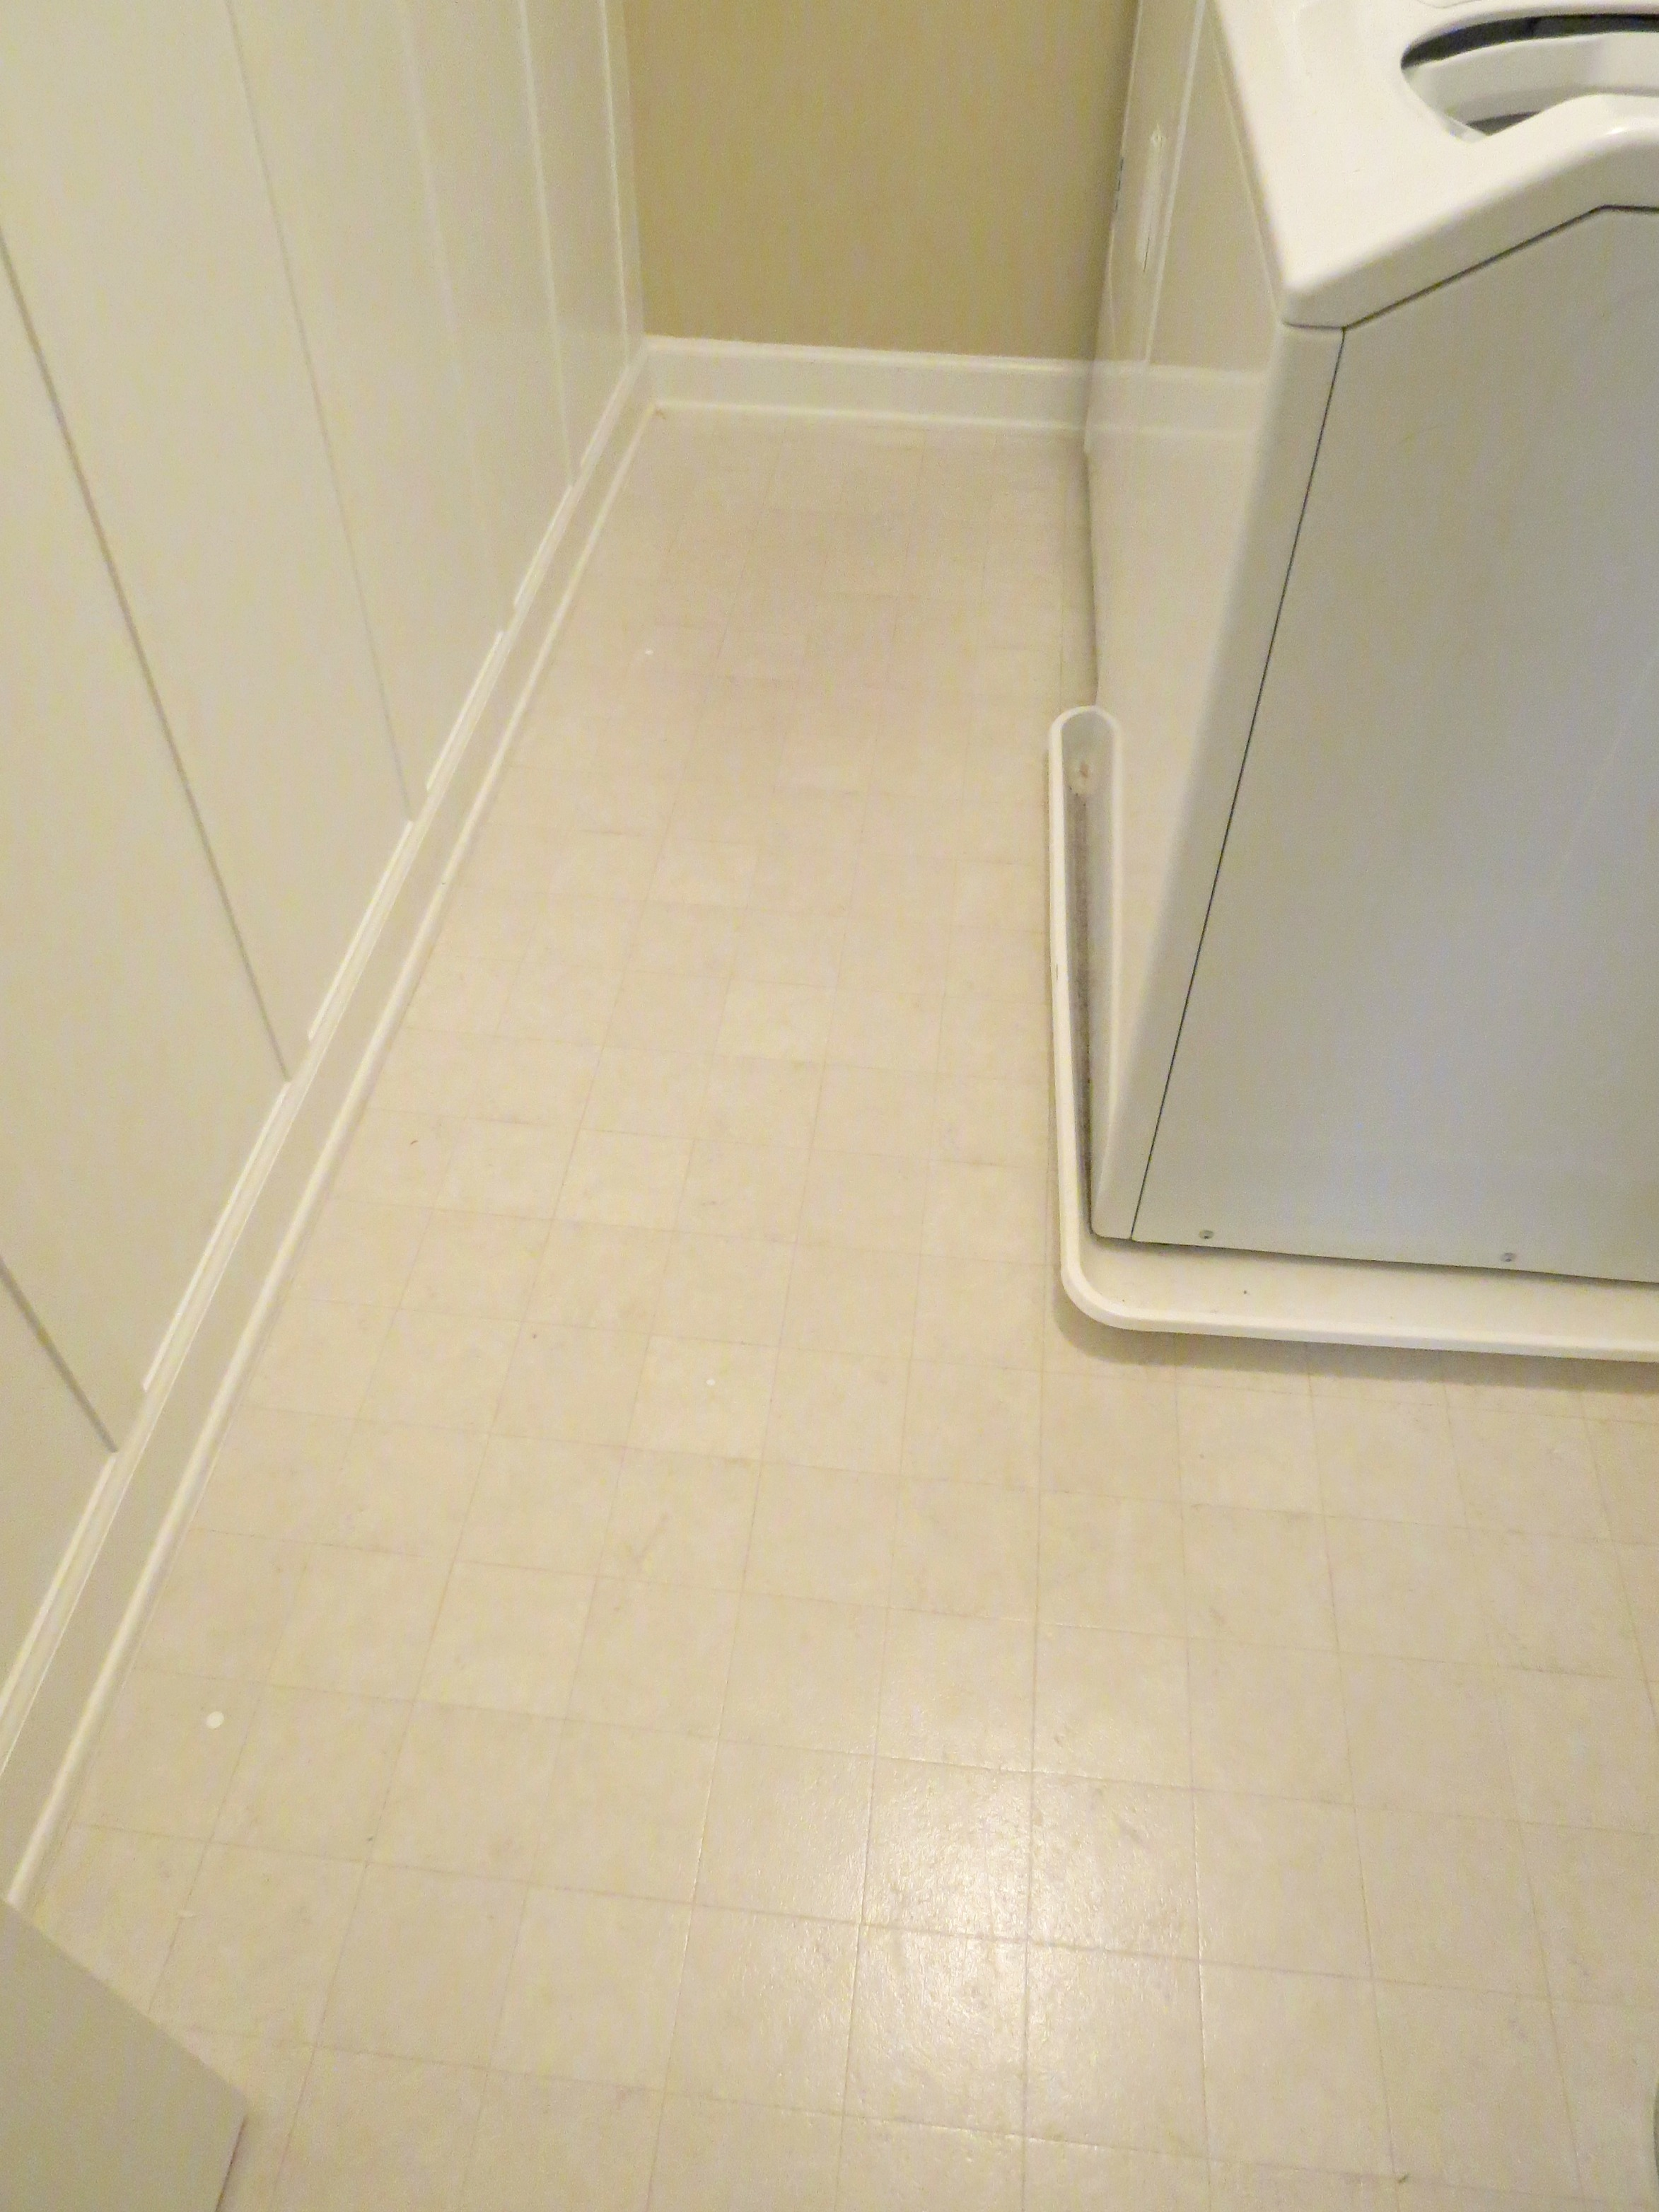 carpet larger tile view image linoleum cleaning home floors and restoration floor healthy